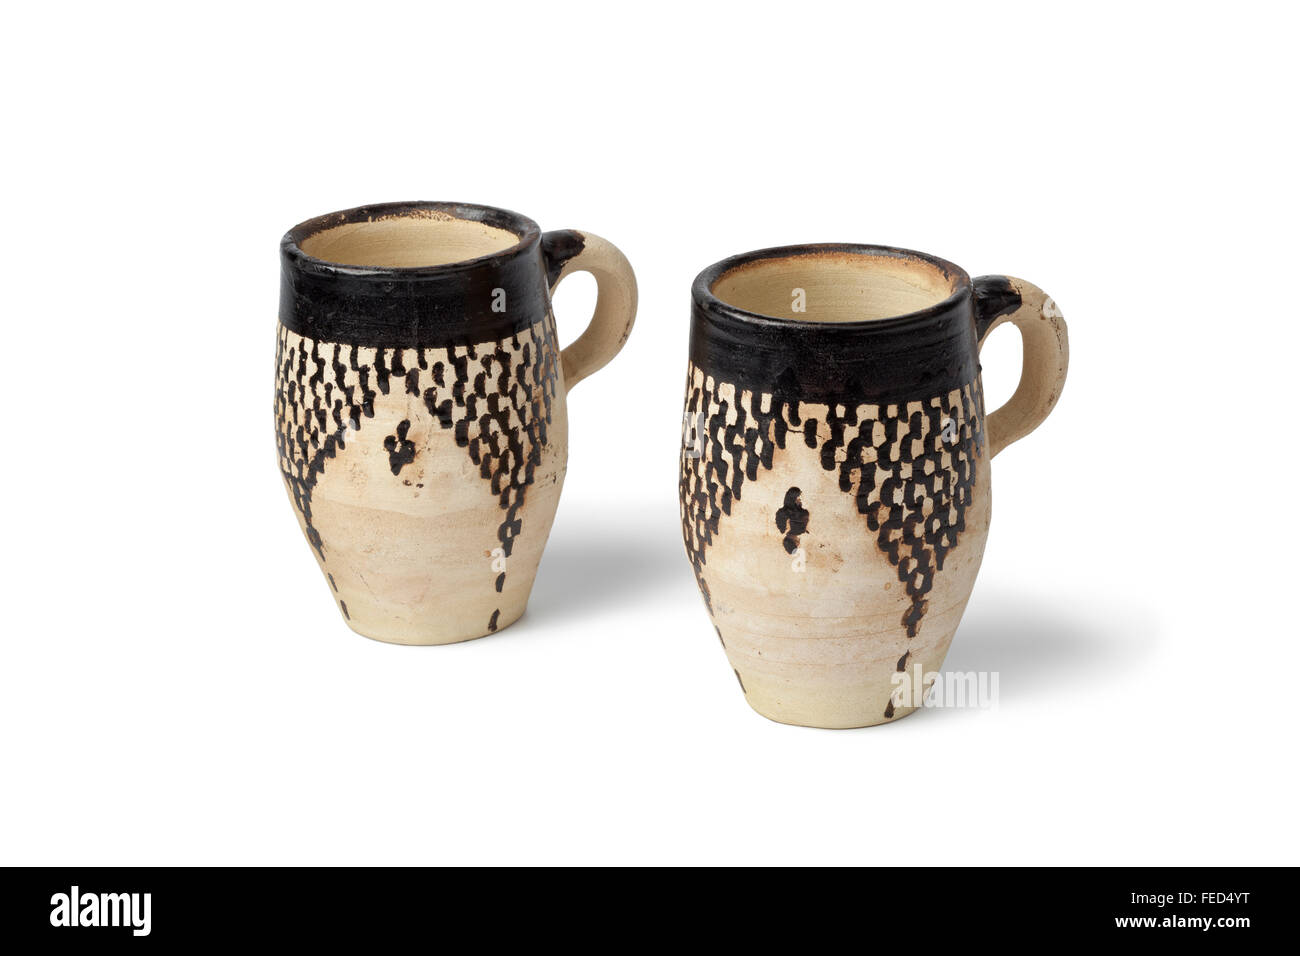 Traditional clay Moroccan water cups on white background - Stock Image